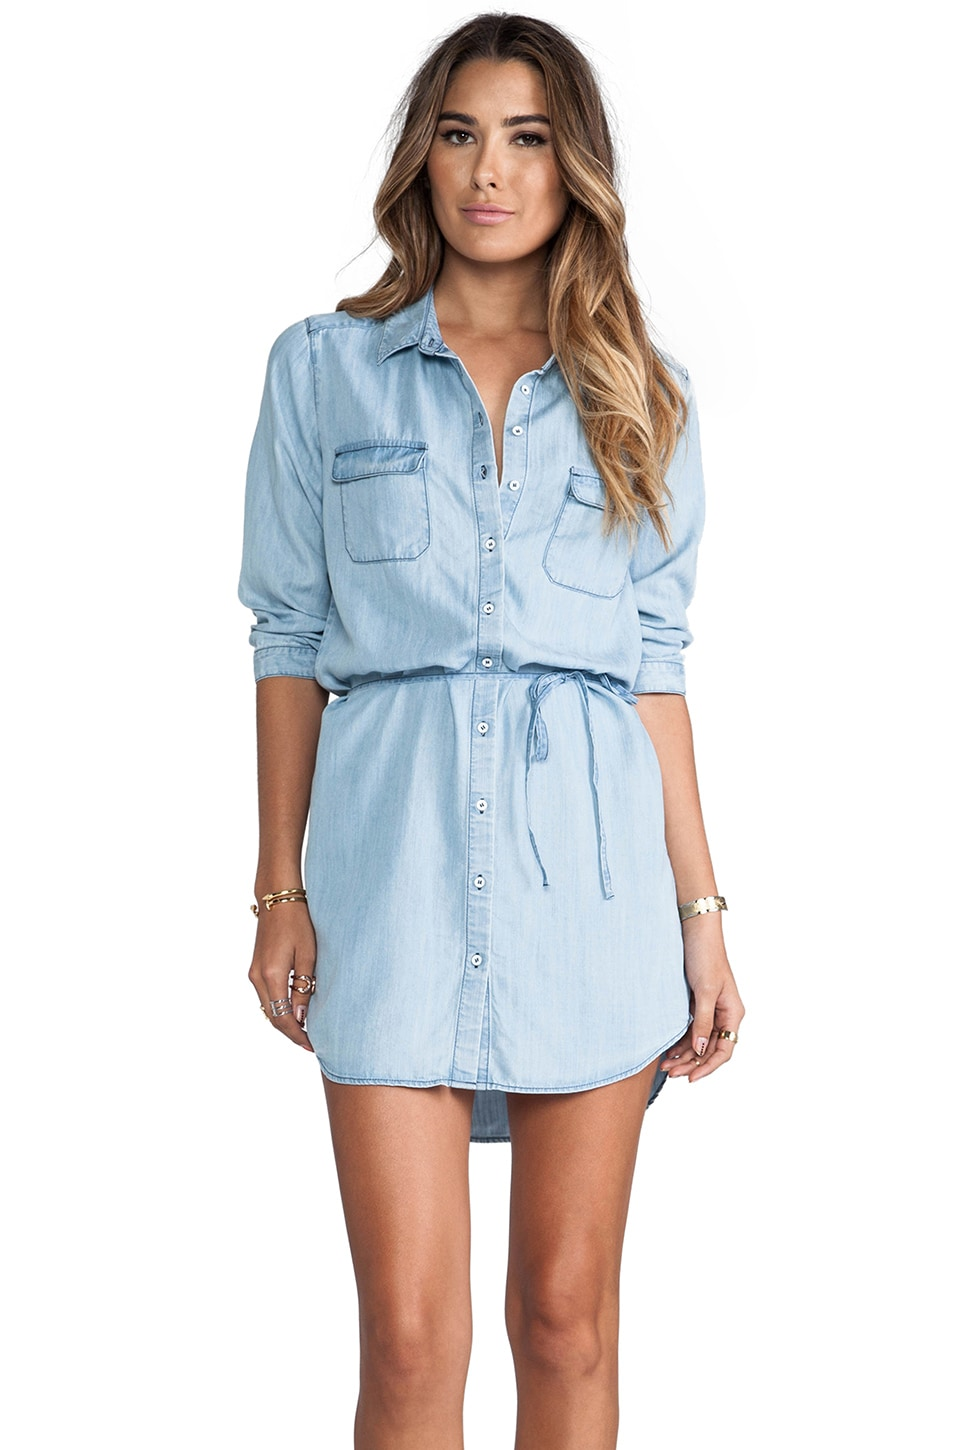 C&C California Chambray Dress in Chambray Multi